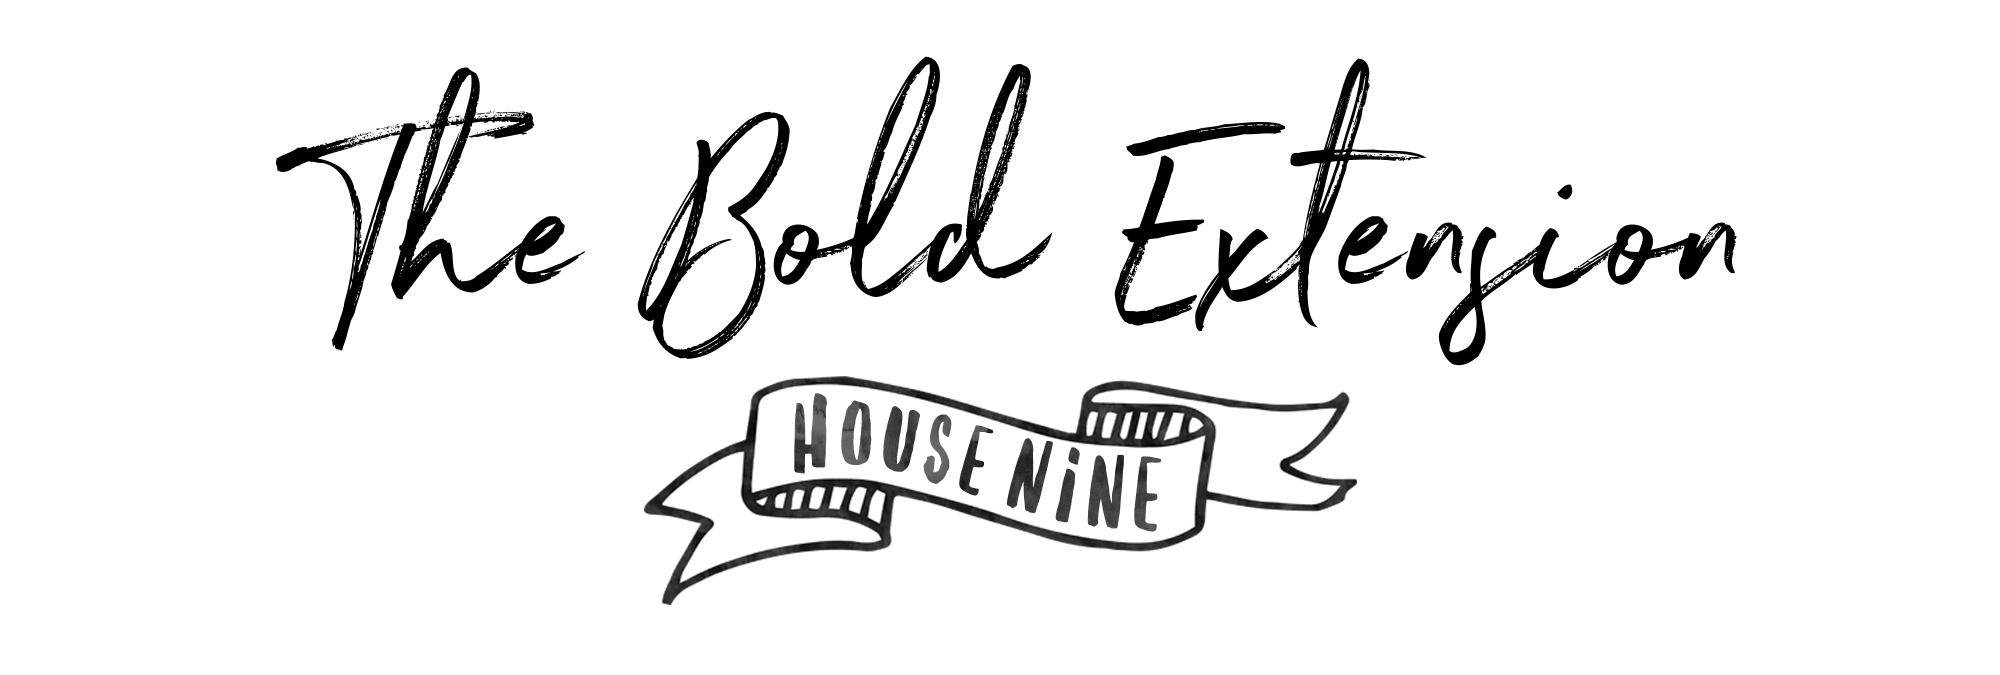 FINAL-HOUSE-9-LOGO.png